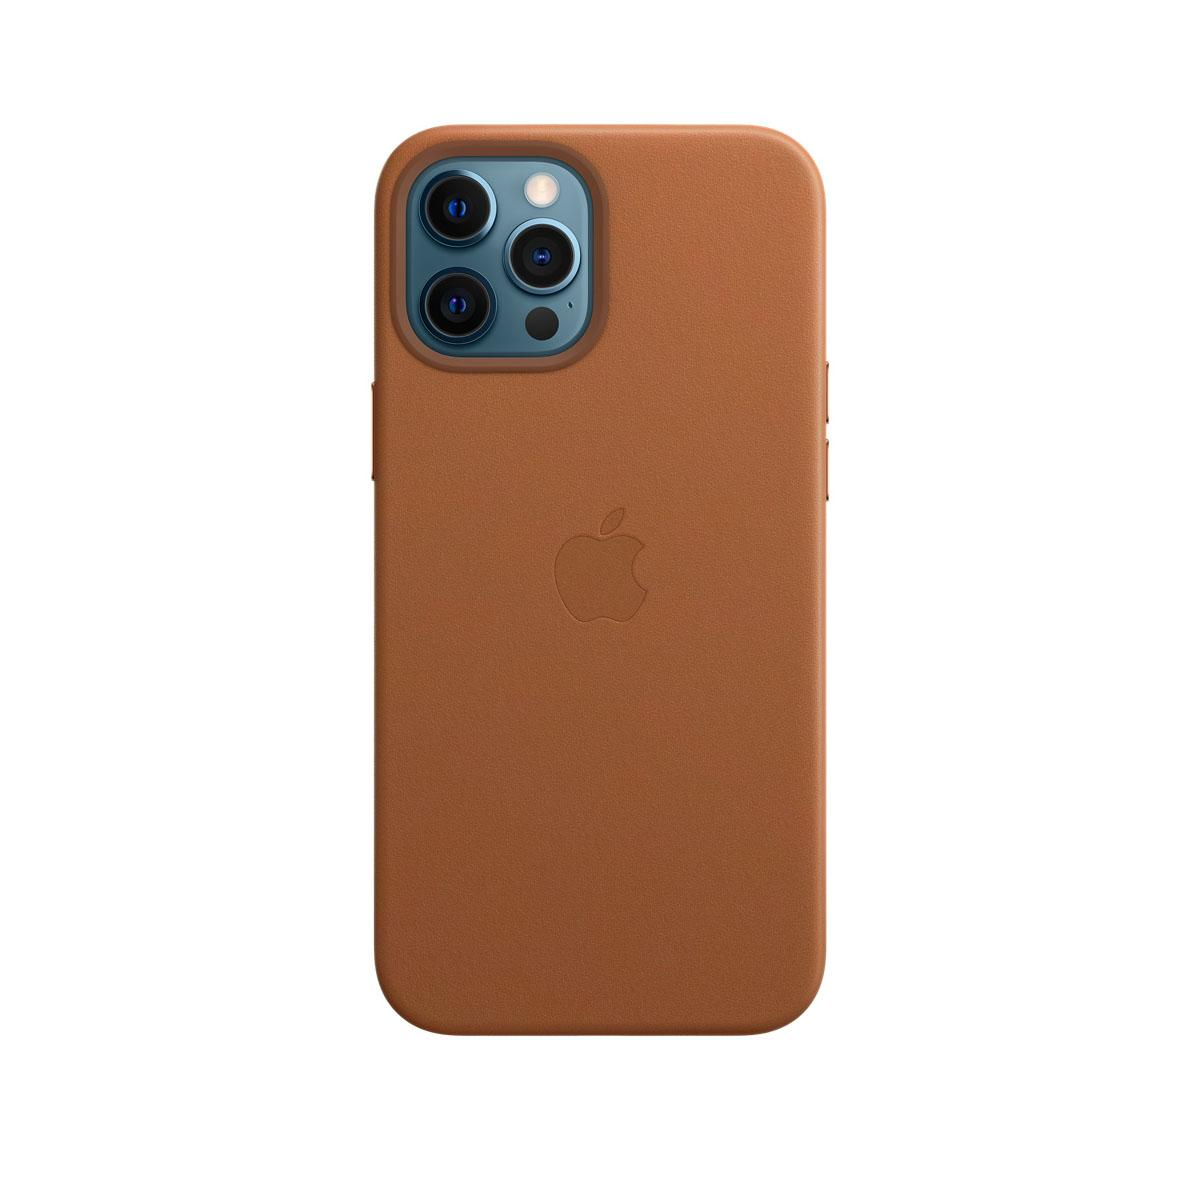 Apple iPhone 12 Pro Max Leather Case Saddle Brown